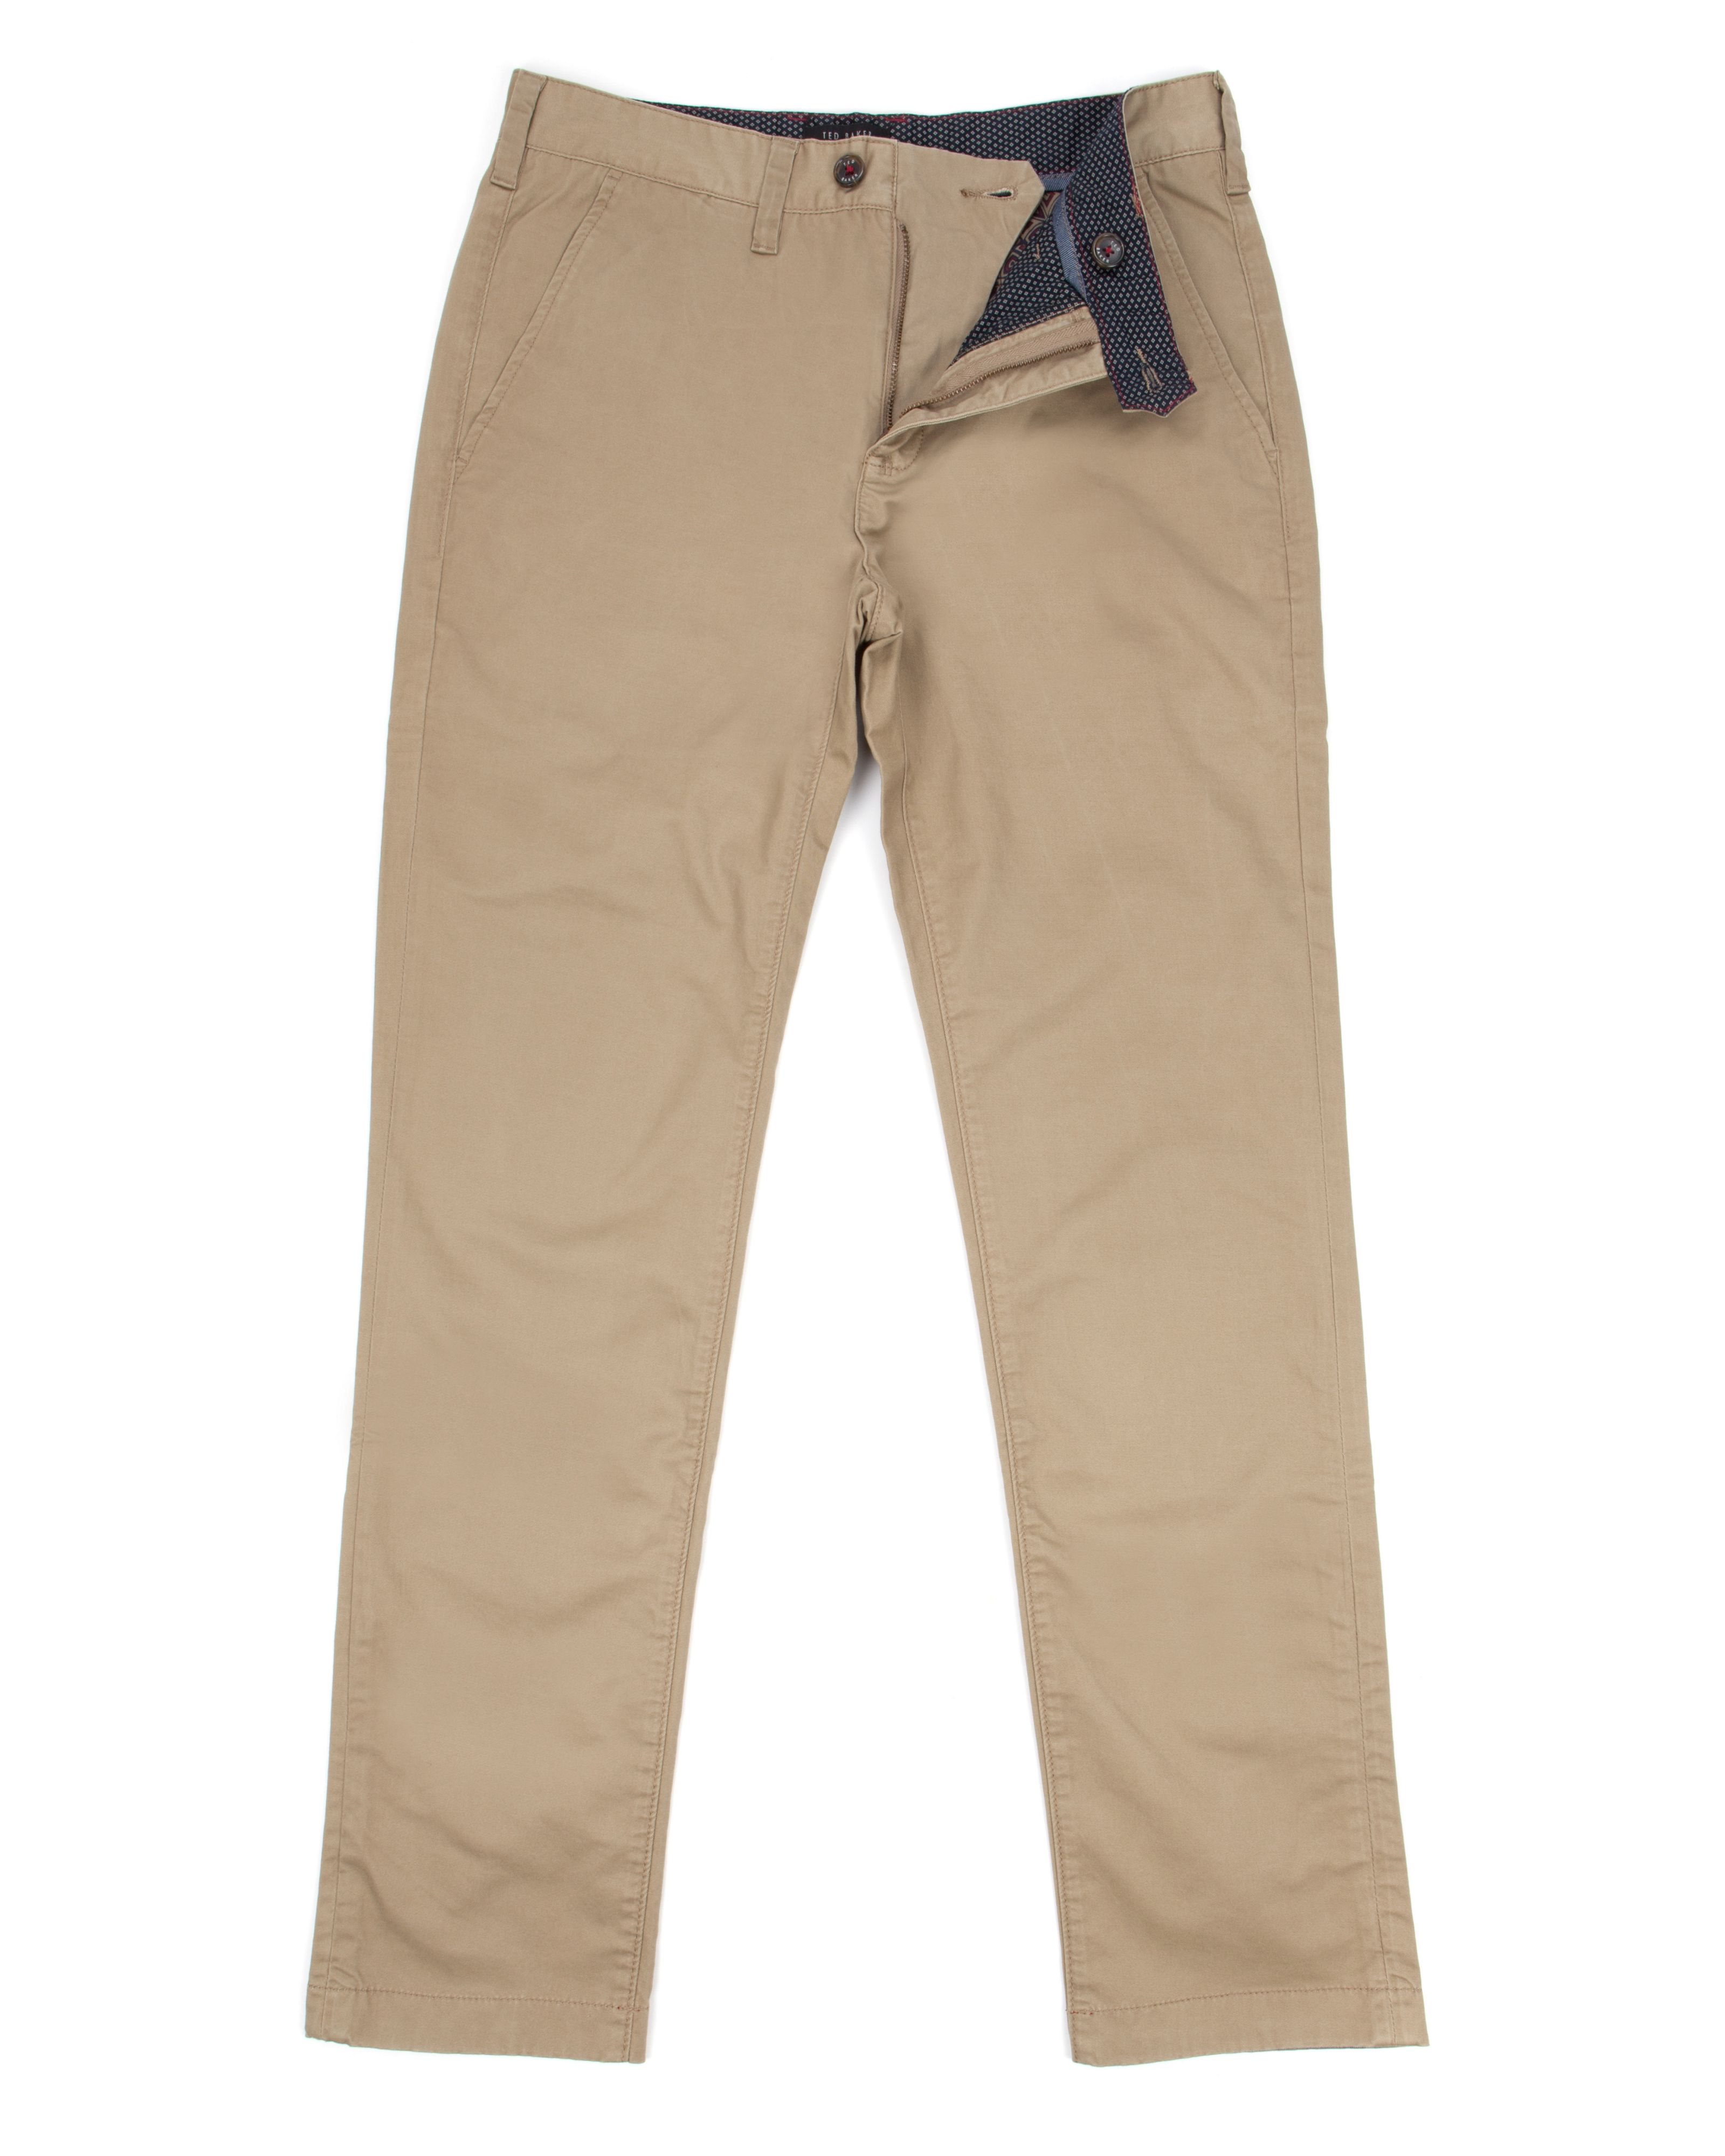 Lucksty slim fit chino